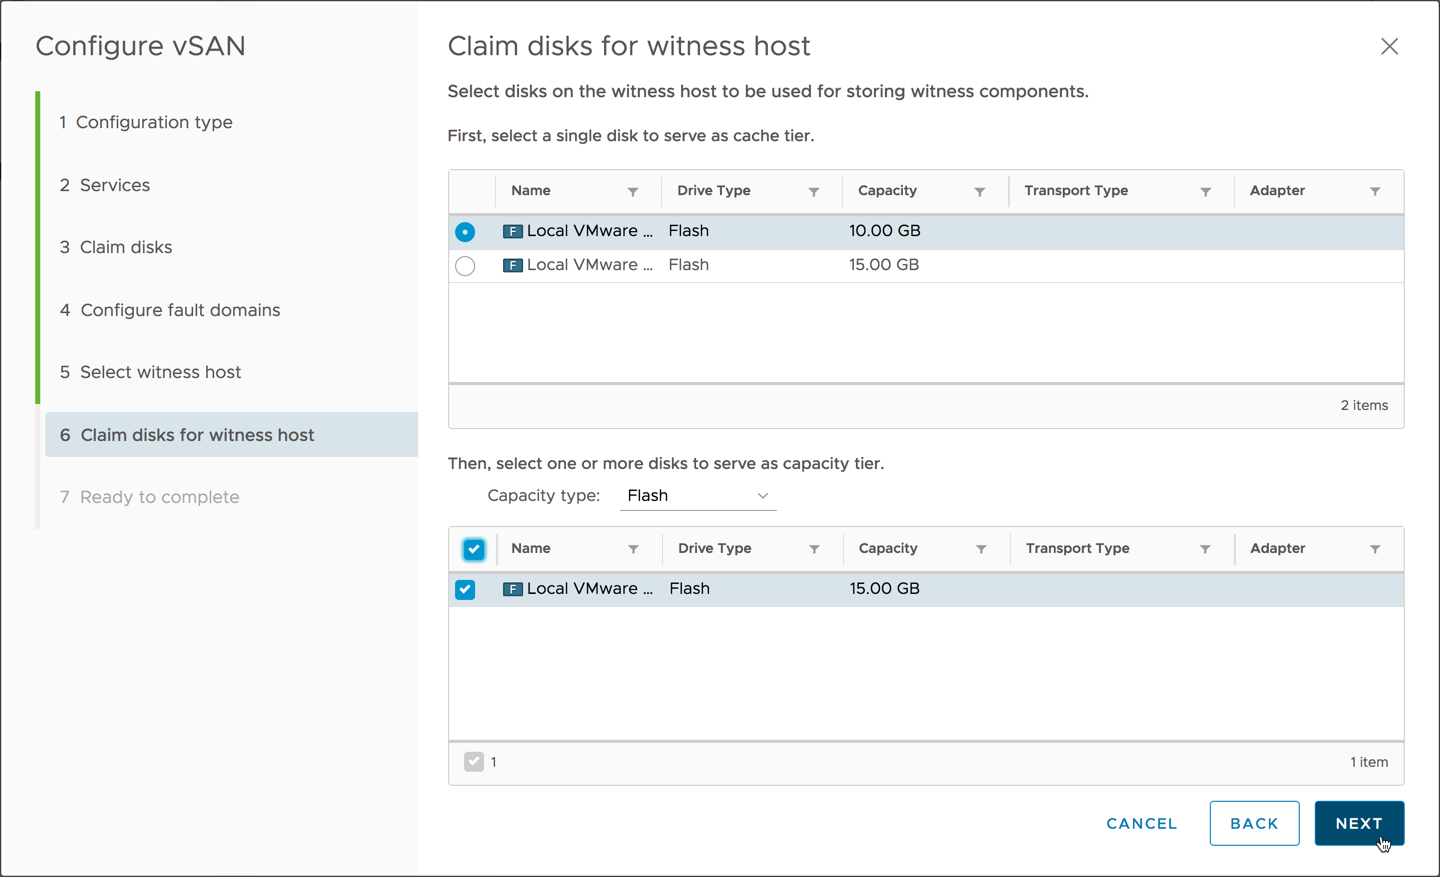 Create Step 6 Claim Disks for Witness Host